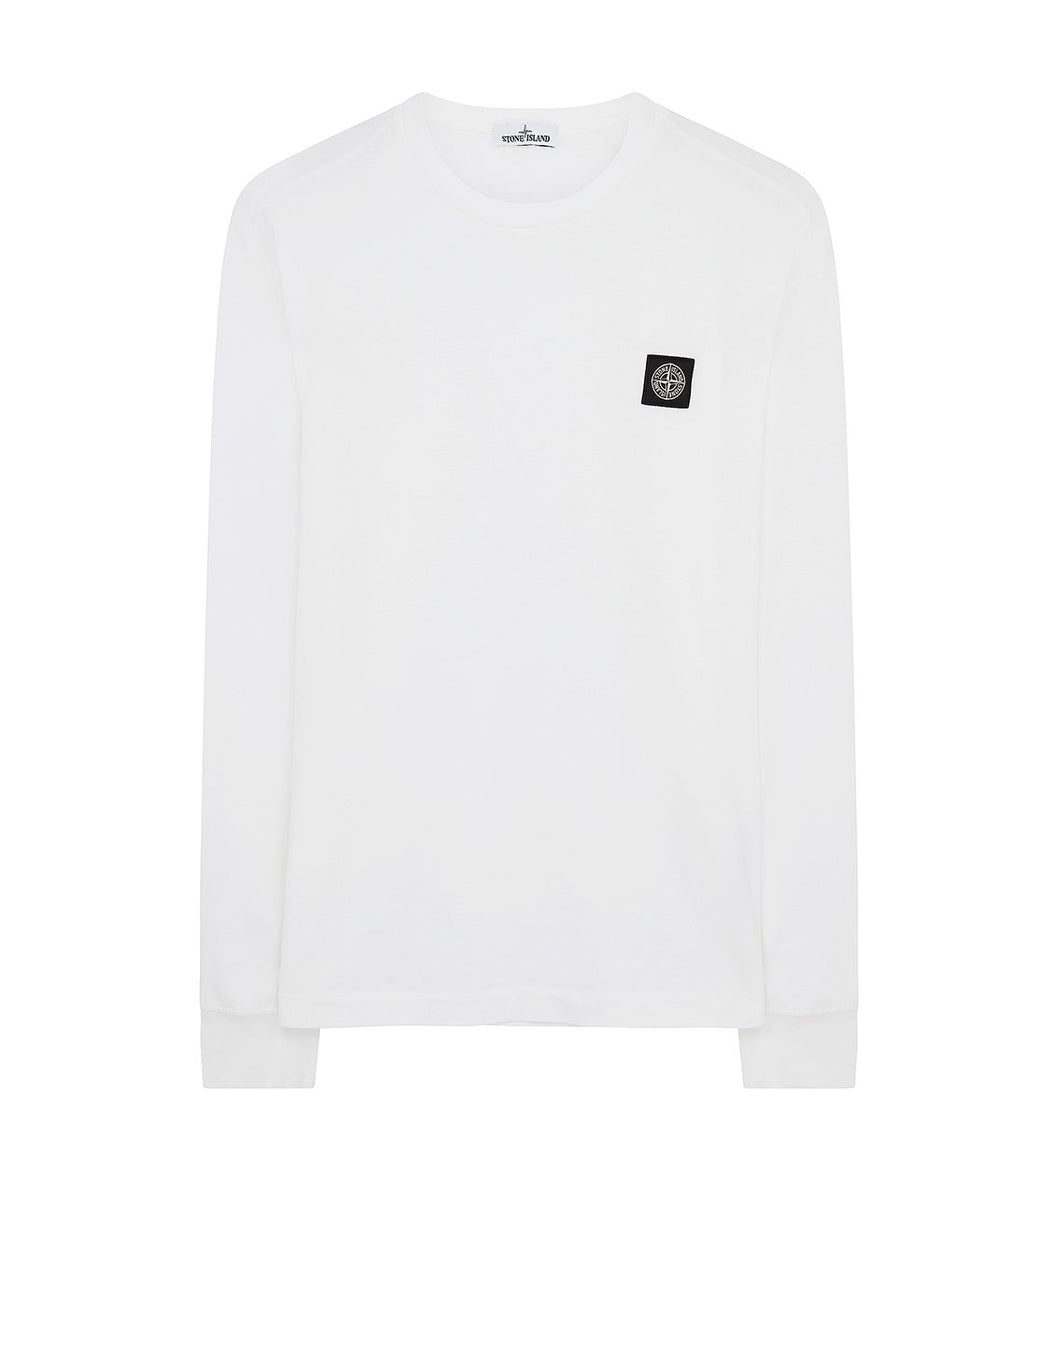 STONE ISLAND -  LONG SLEEVE T-SHIRT IN WHITE